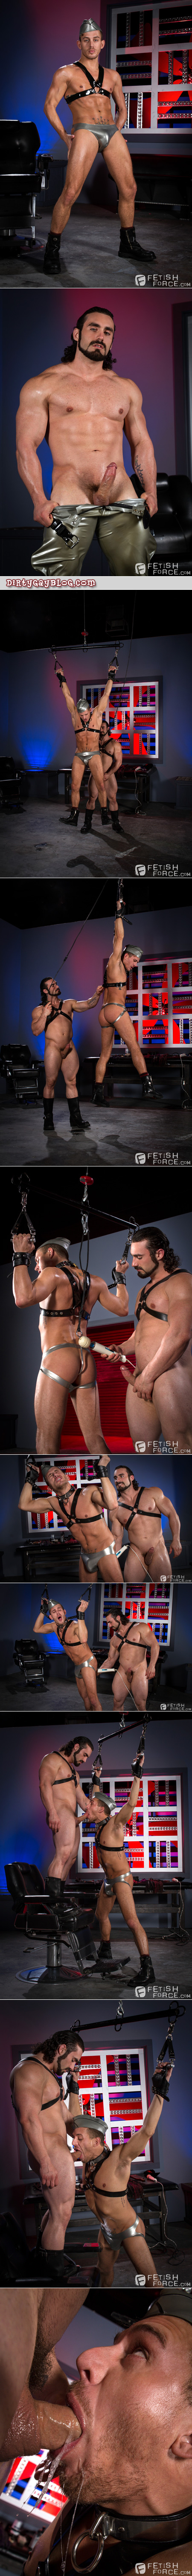 Men in rubber bondage using sex toys to dominate another man.